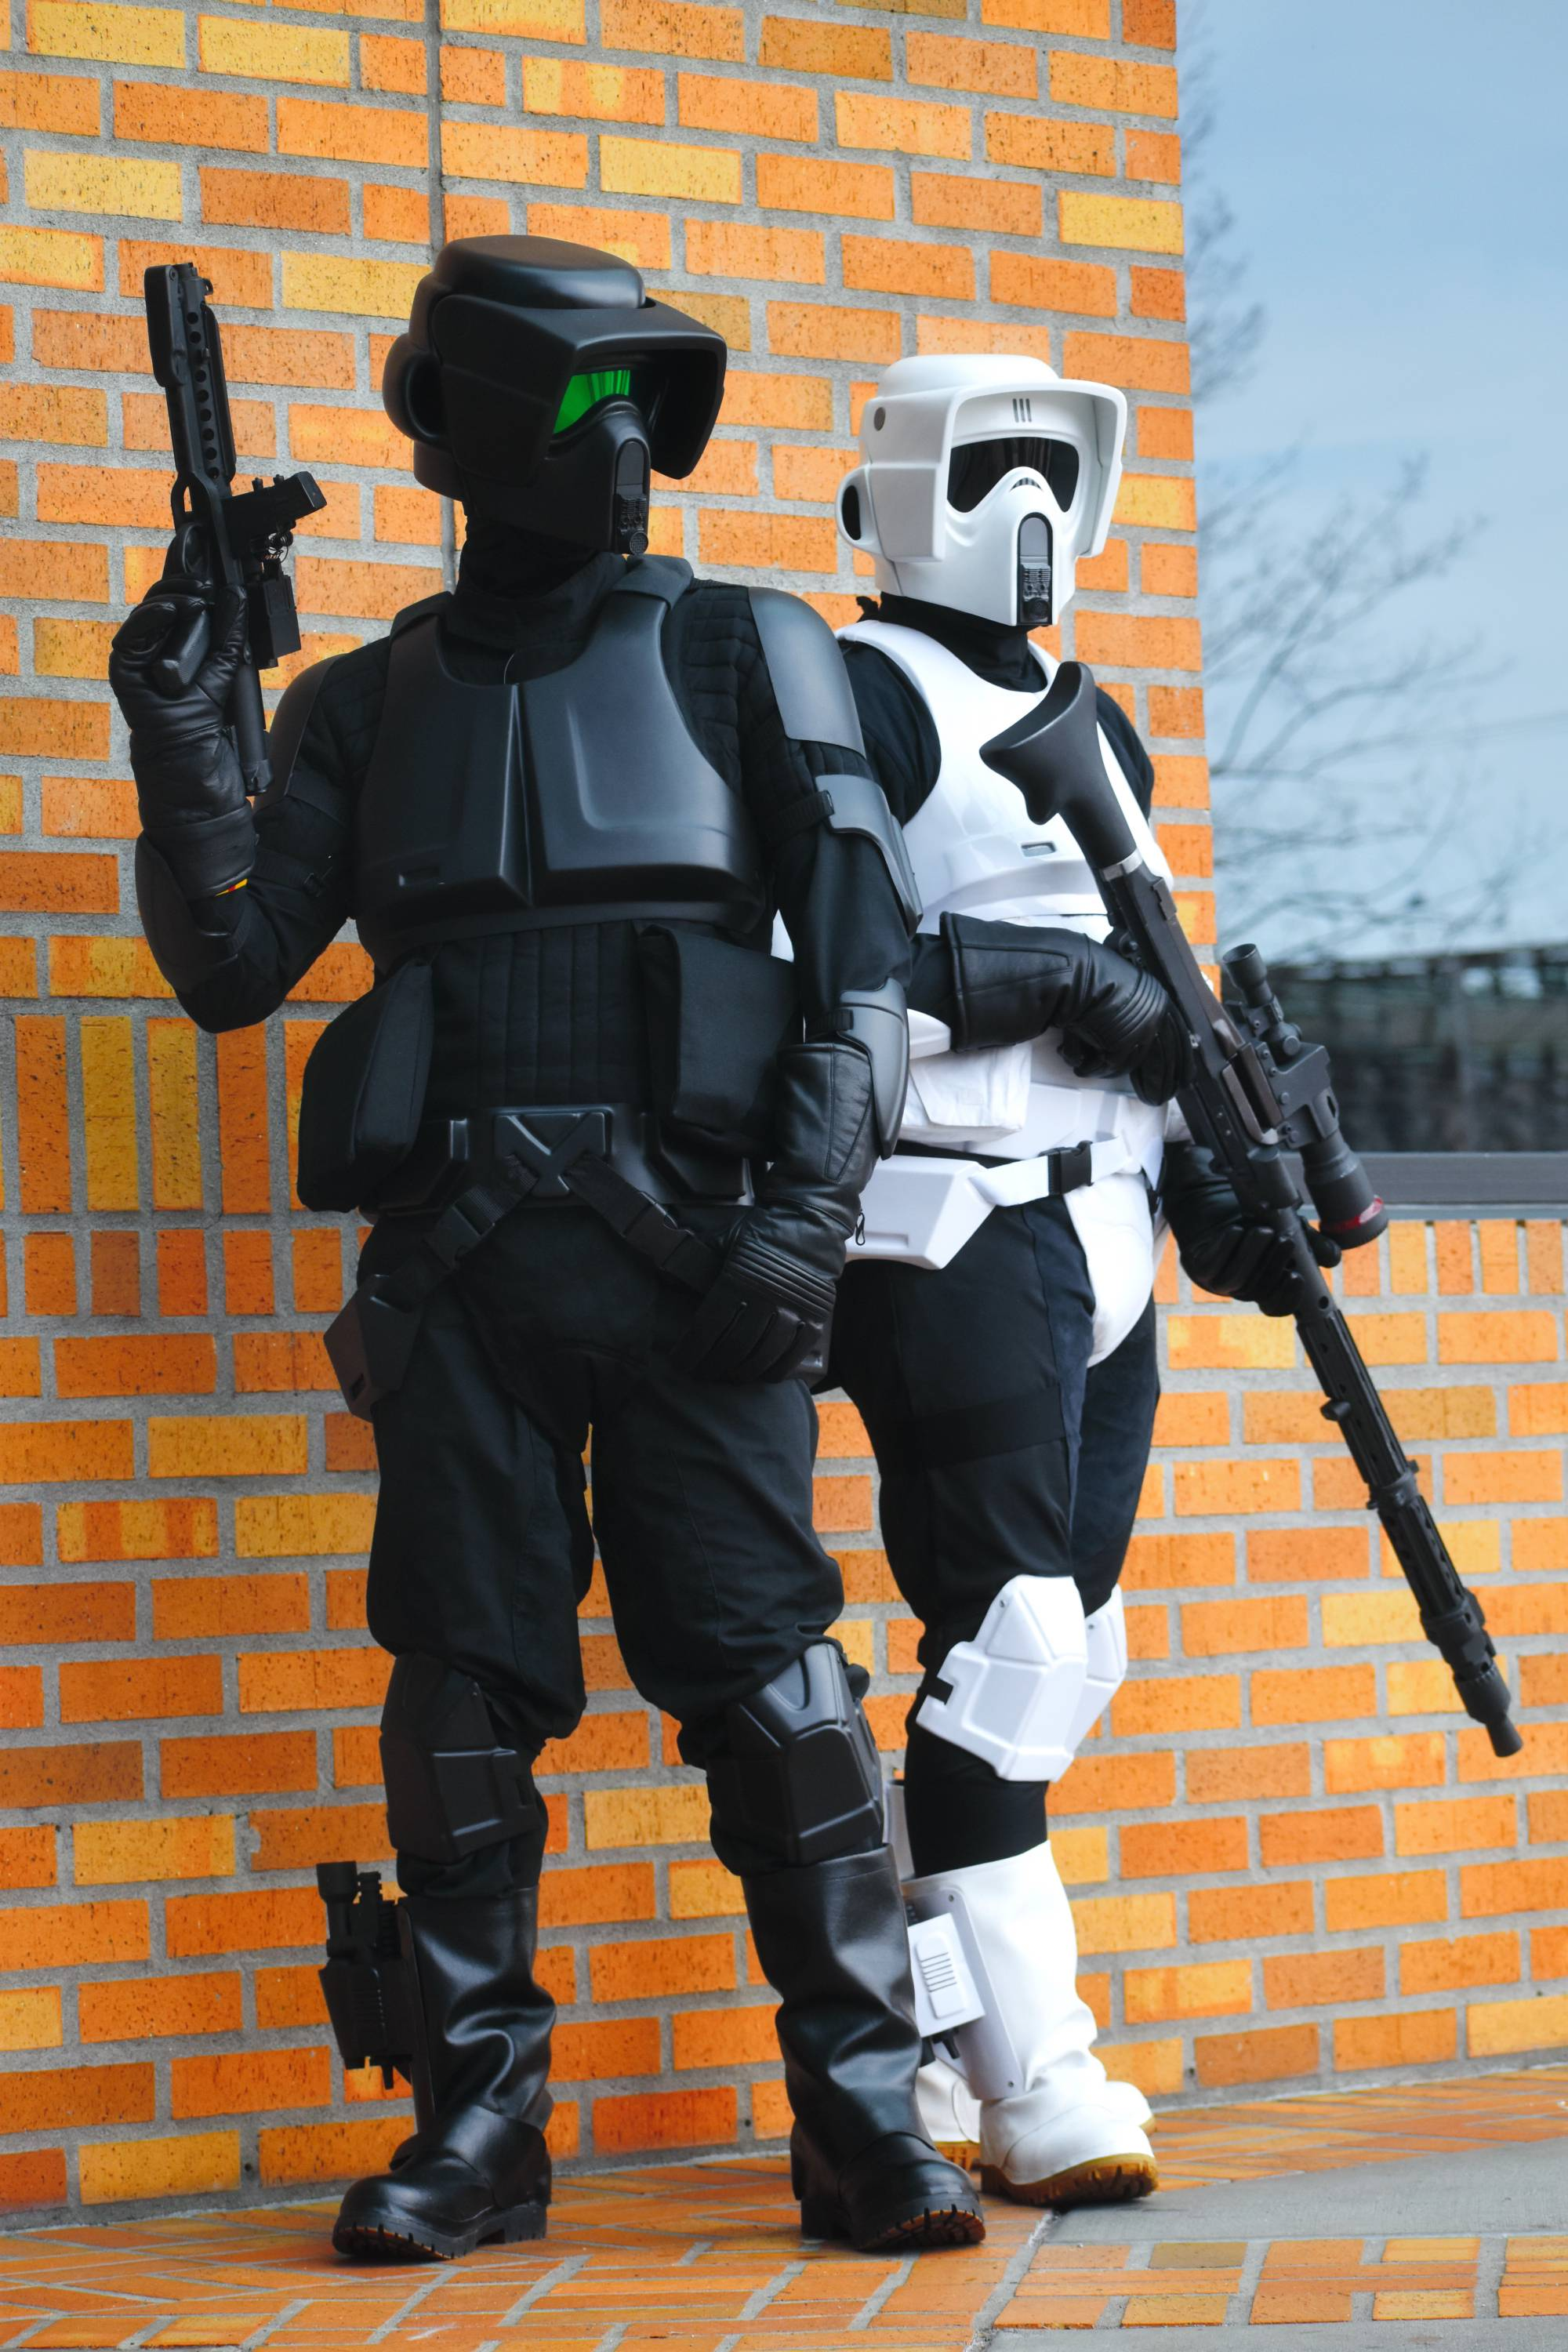 Absolutely love this photo of me (left) and my Legion friend (right) from earlier this year trooping